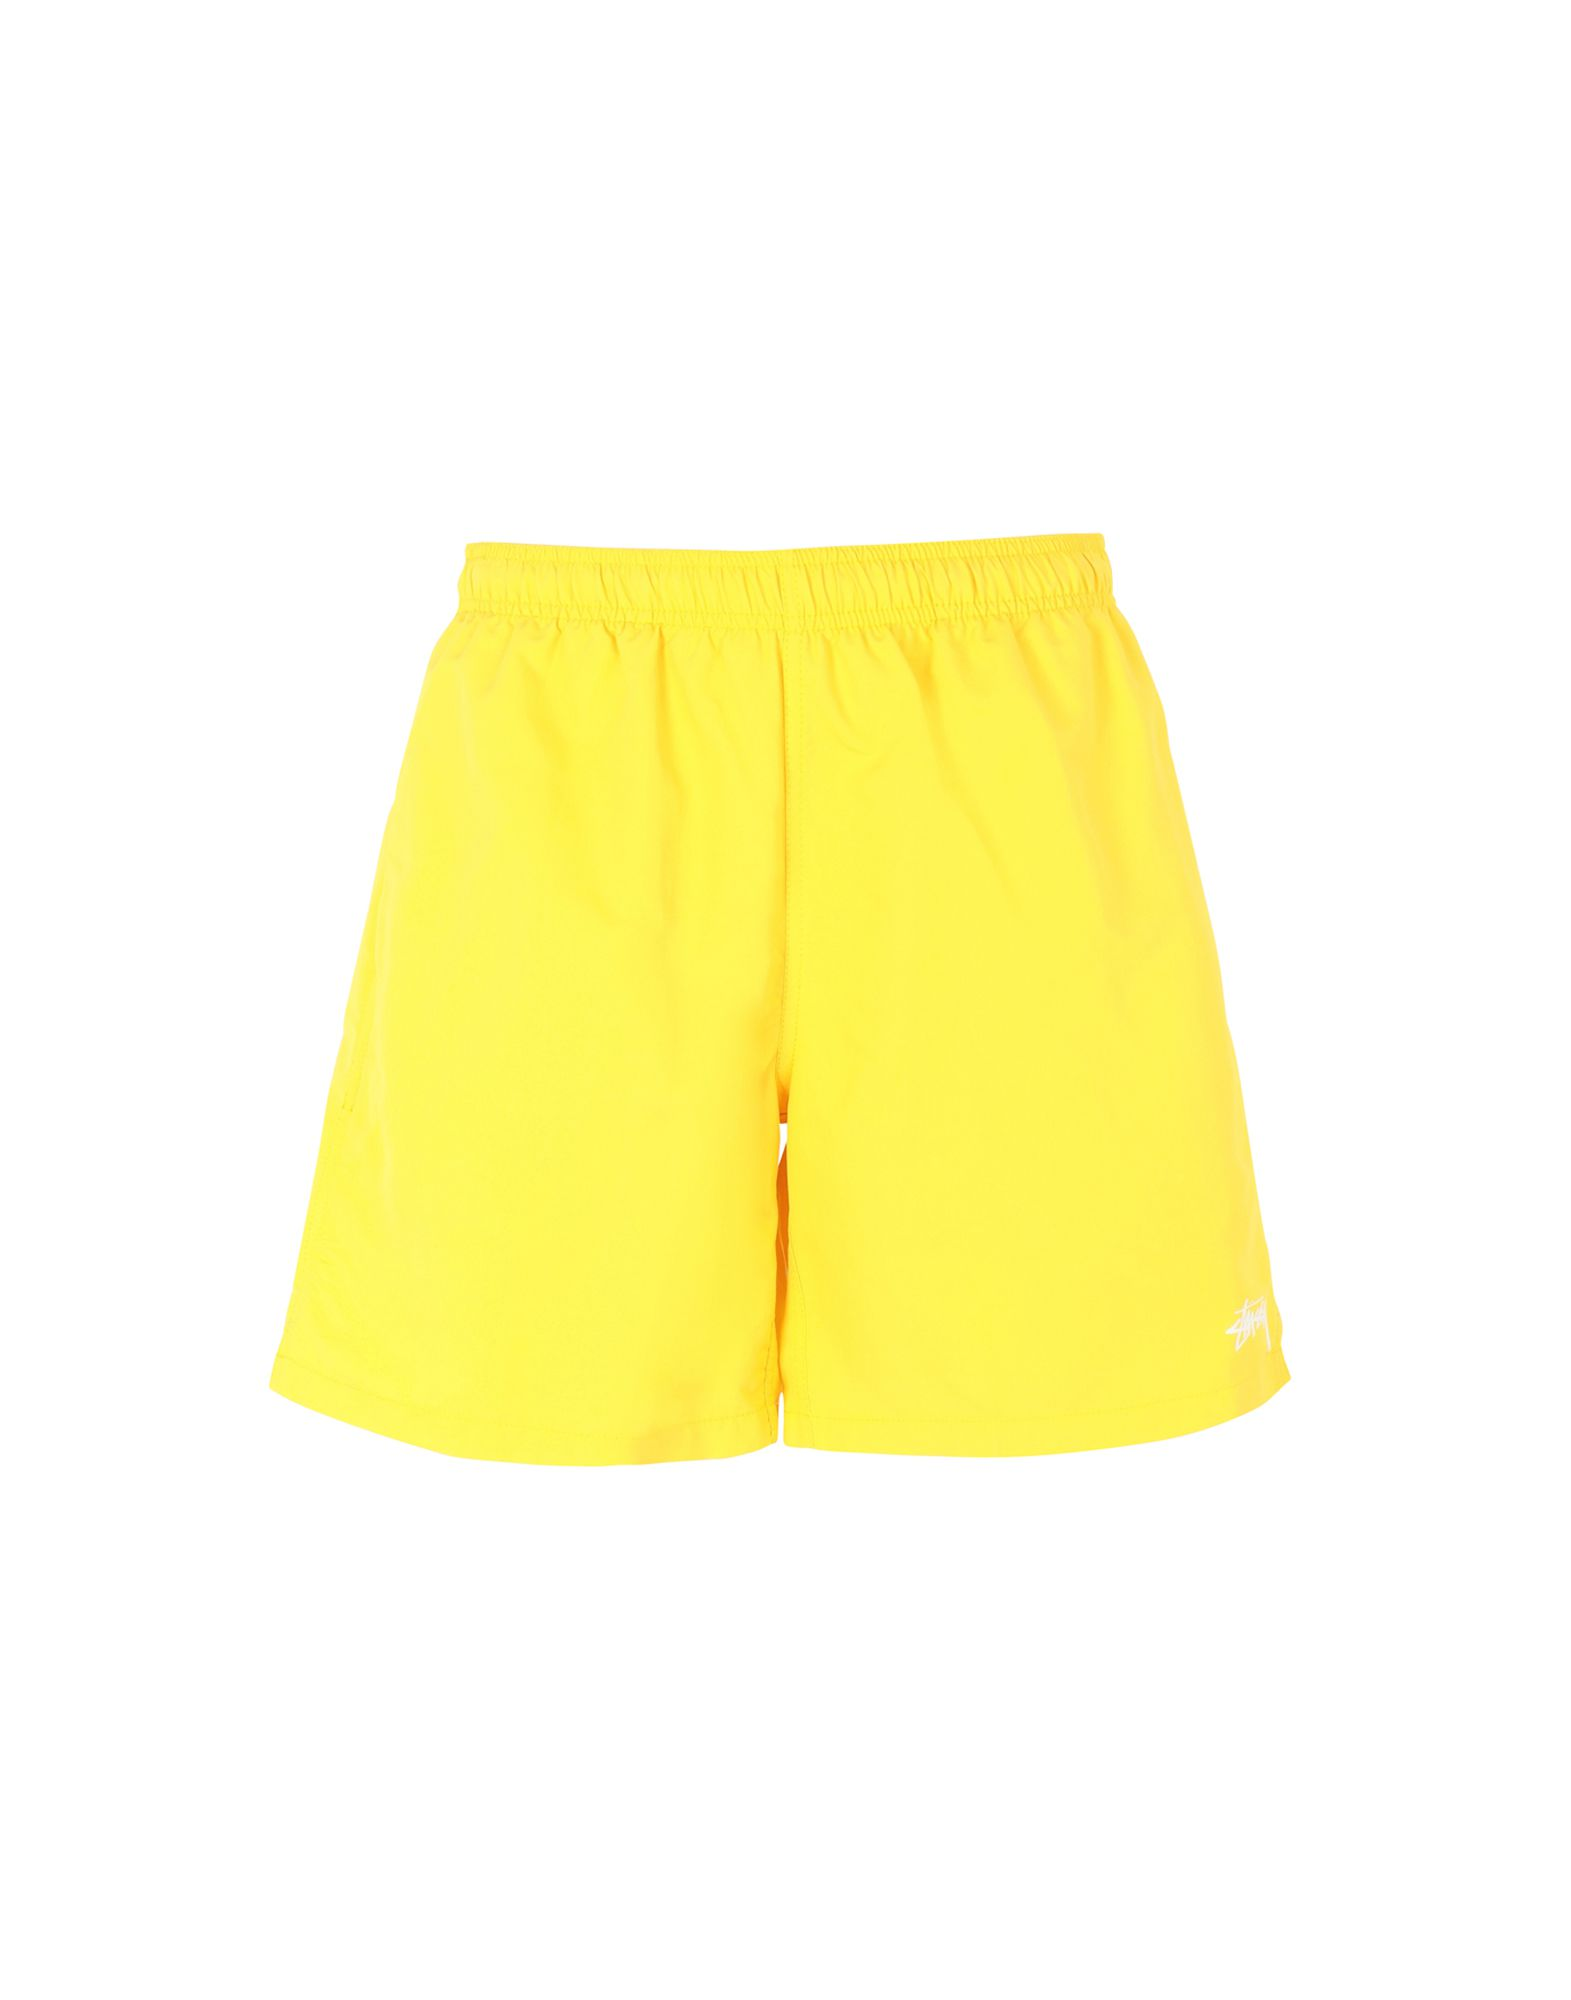 Boxer Mare Stussy Stock Water Short - uomo - - - 47245052CT 053